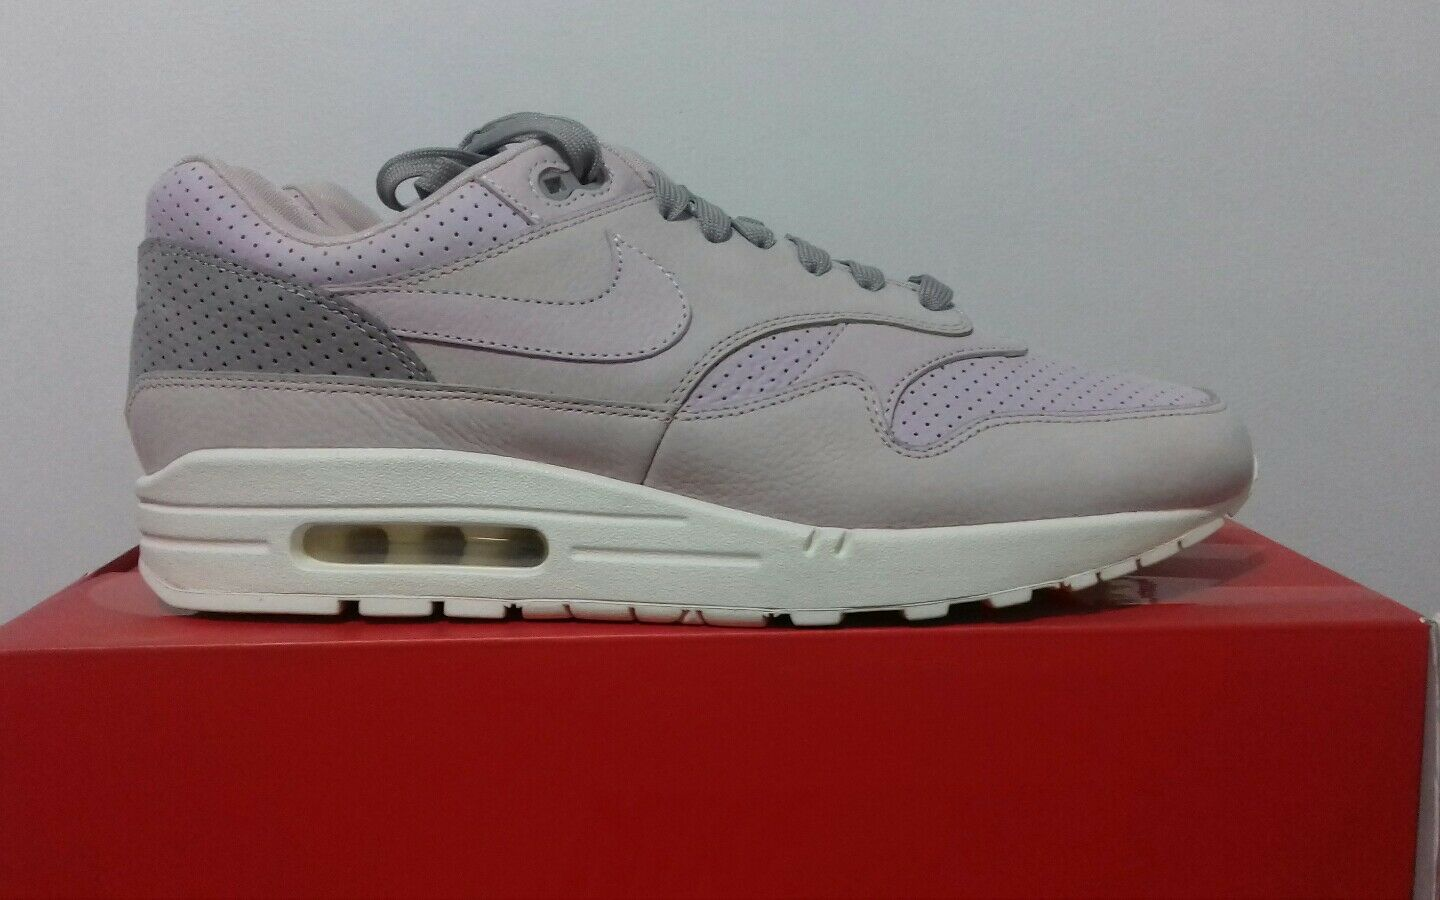 Air max 1 premium (OG shape) genuine leather quick strike UK size 11